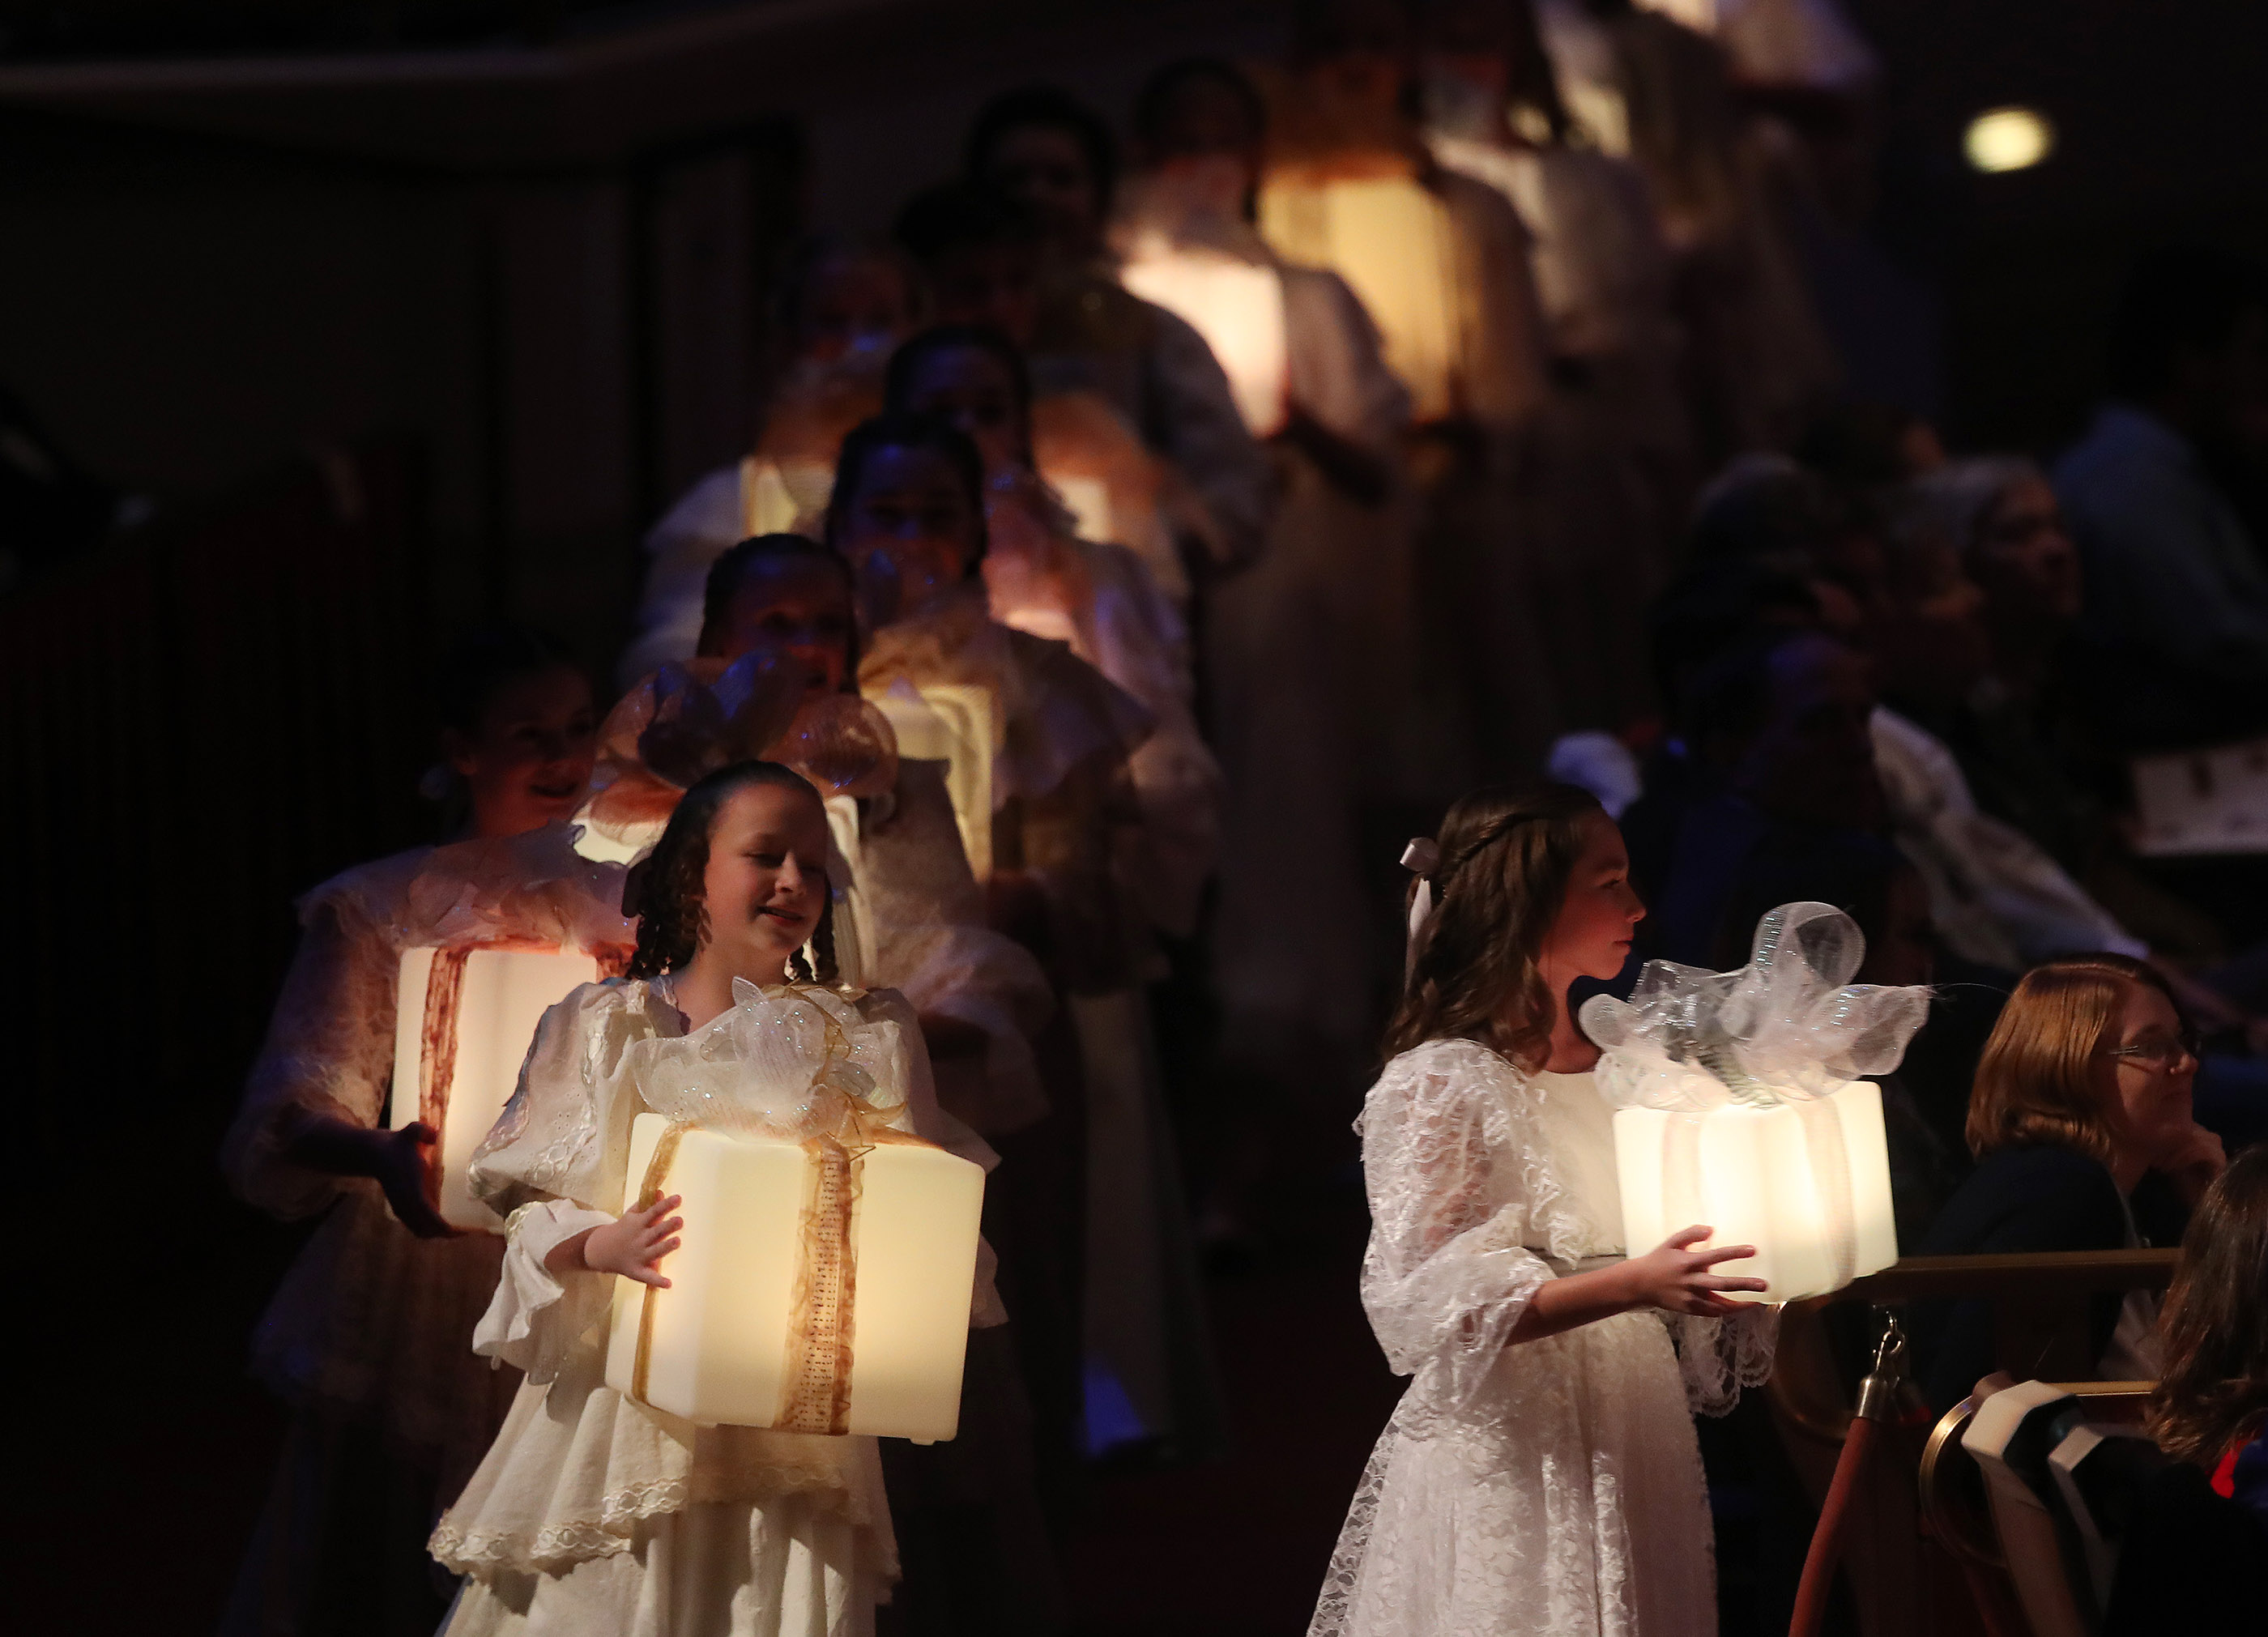 Performers accompany the Tabernacle Choir at Temple Square during their opening Christmas concert at the Conference Center in Salt Lake City on Thursday, Dec. 13, 2018.